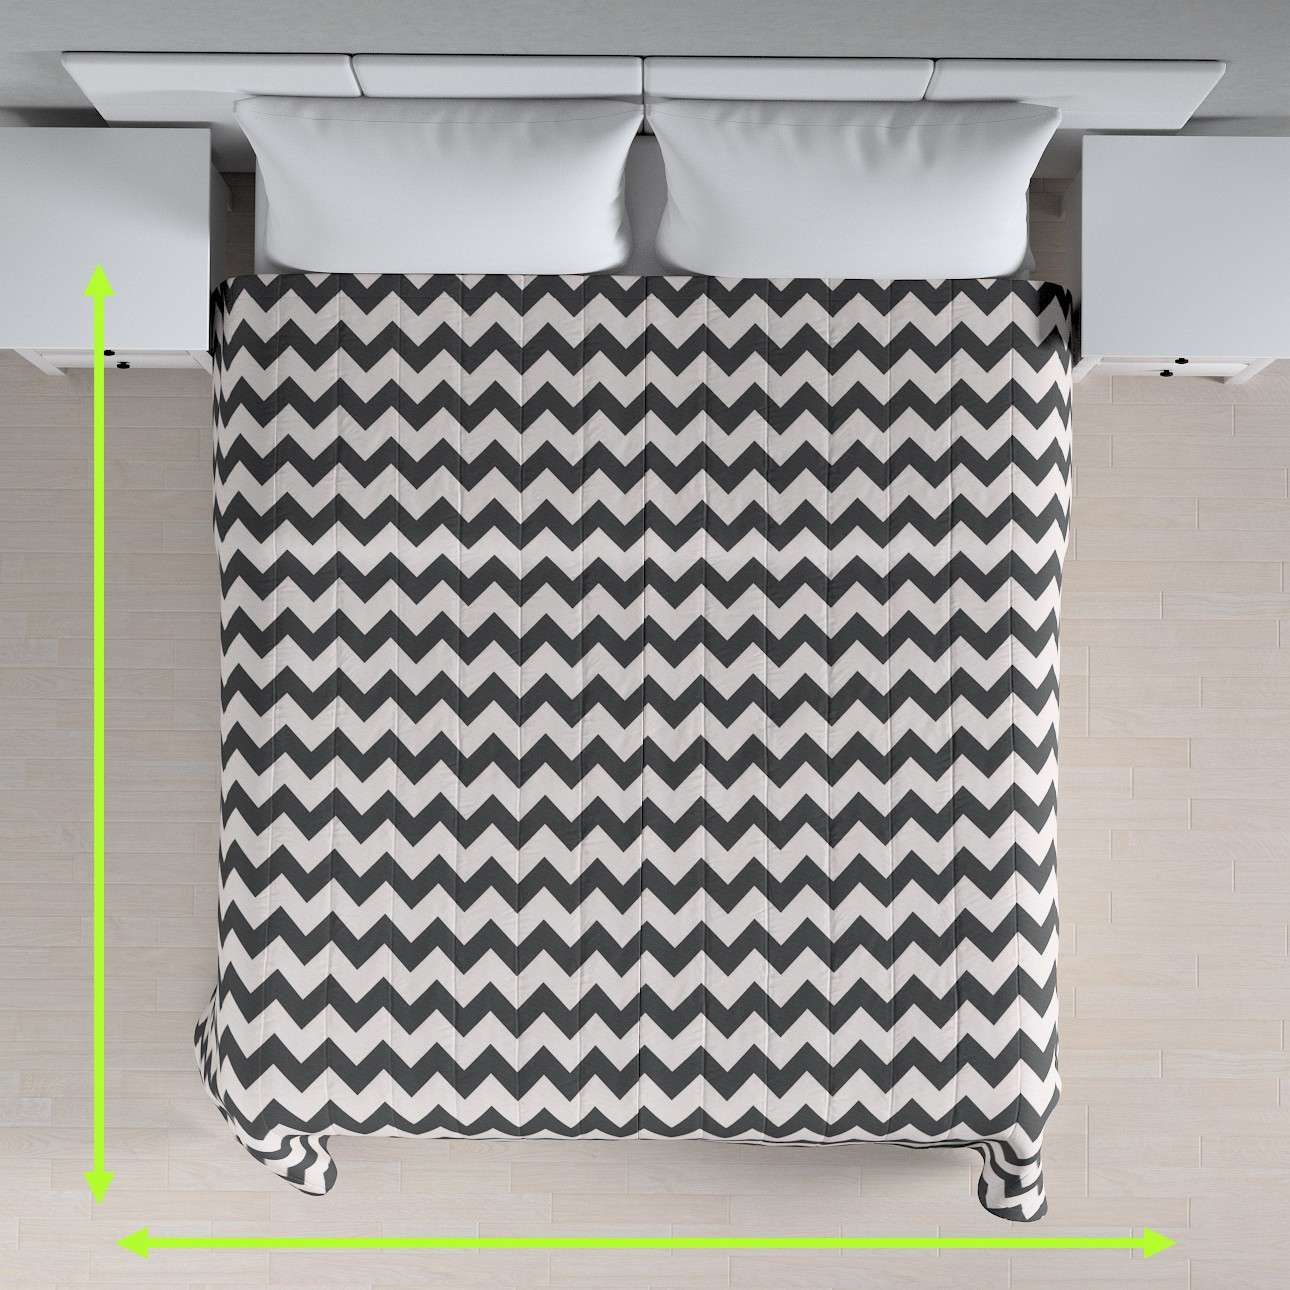 Stripe quilted throw in collection Comics/Geometrical, fabric: 135-02